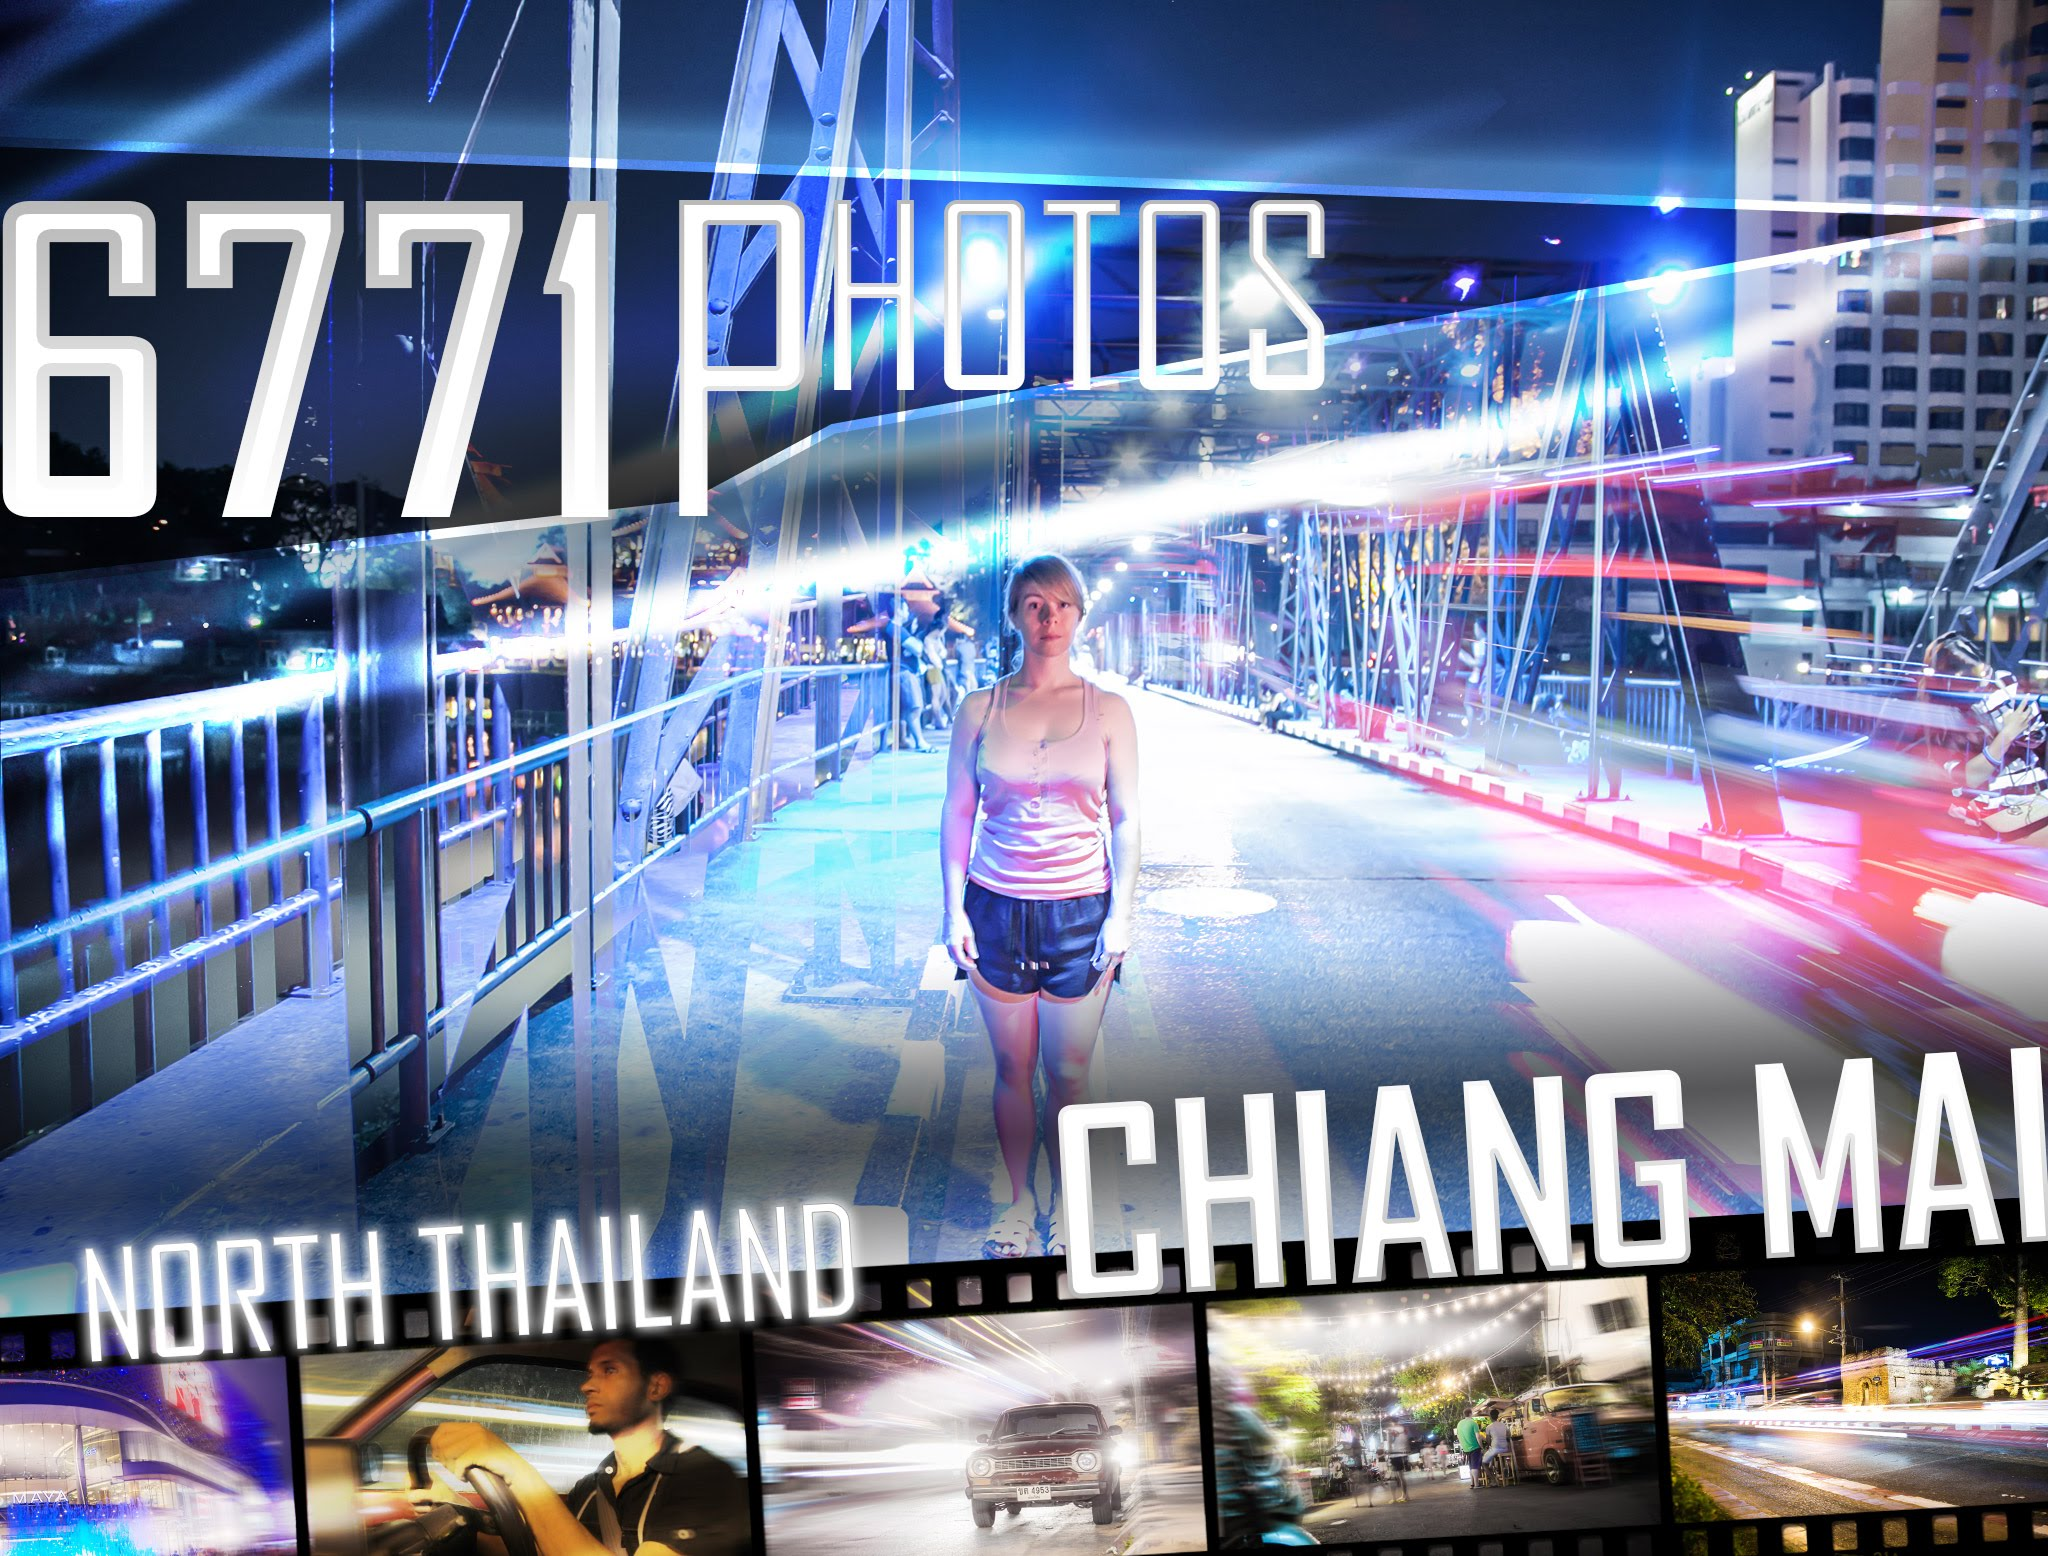 We Took 6771 Photos Of North Thailand & Made A Video Out Of It